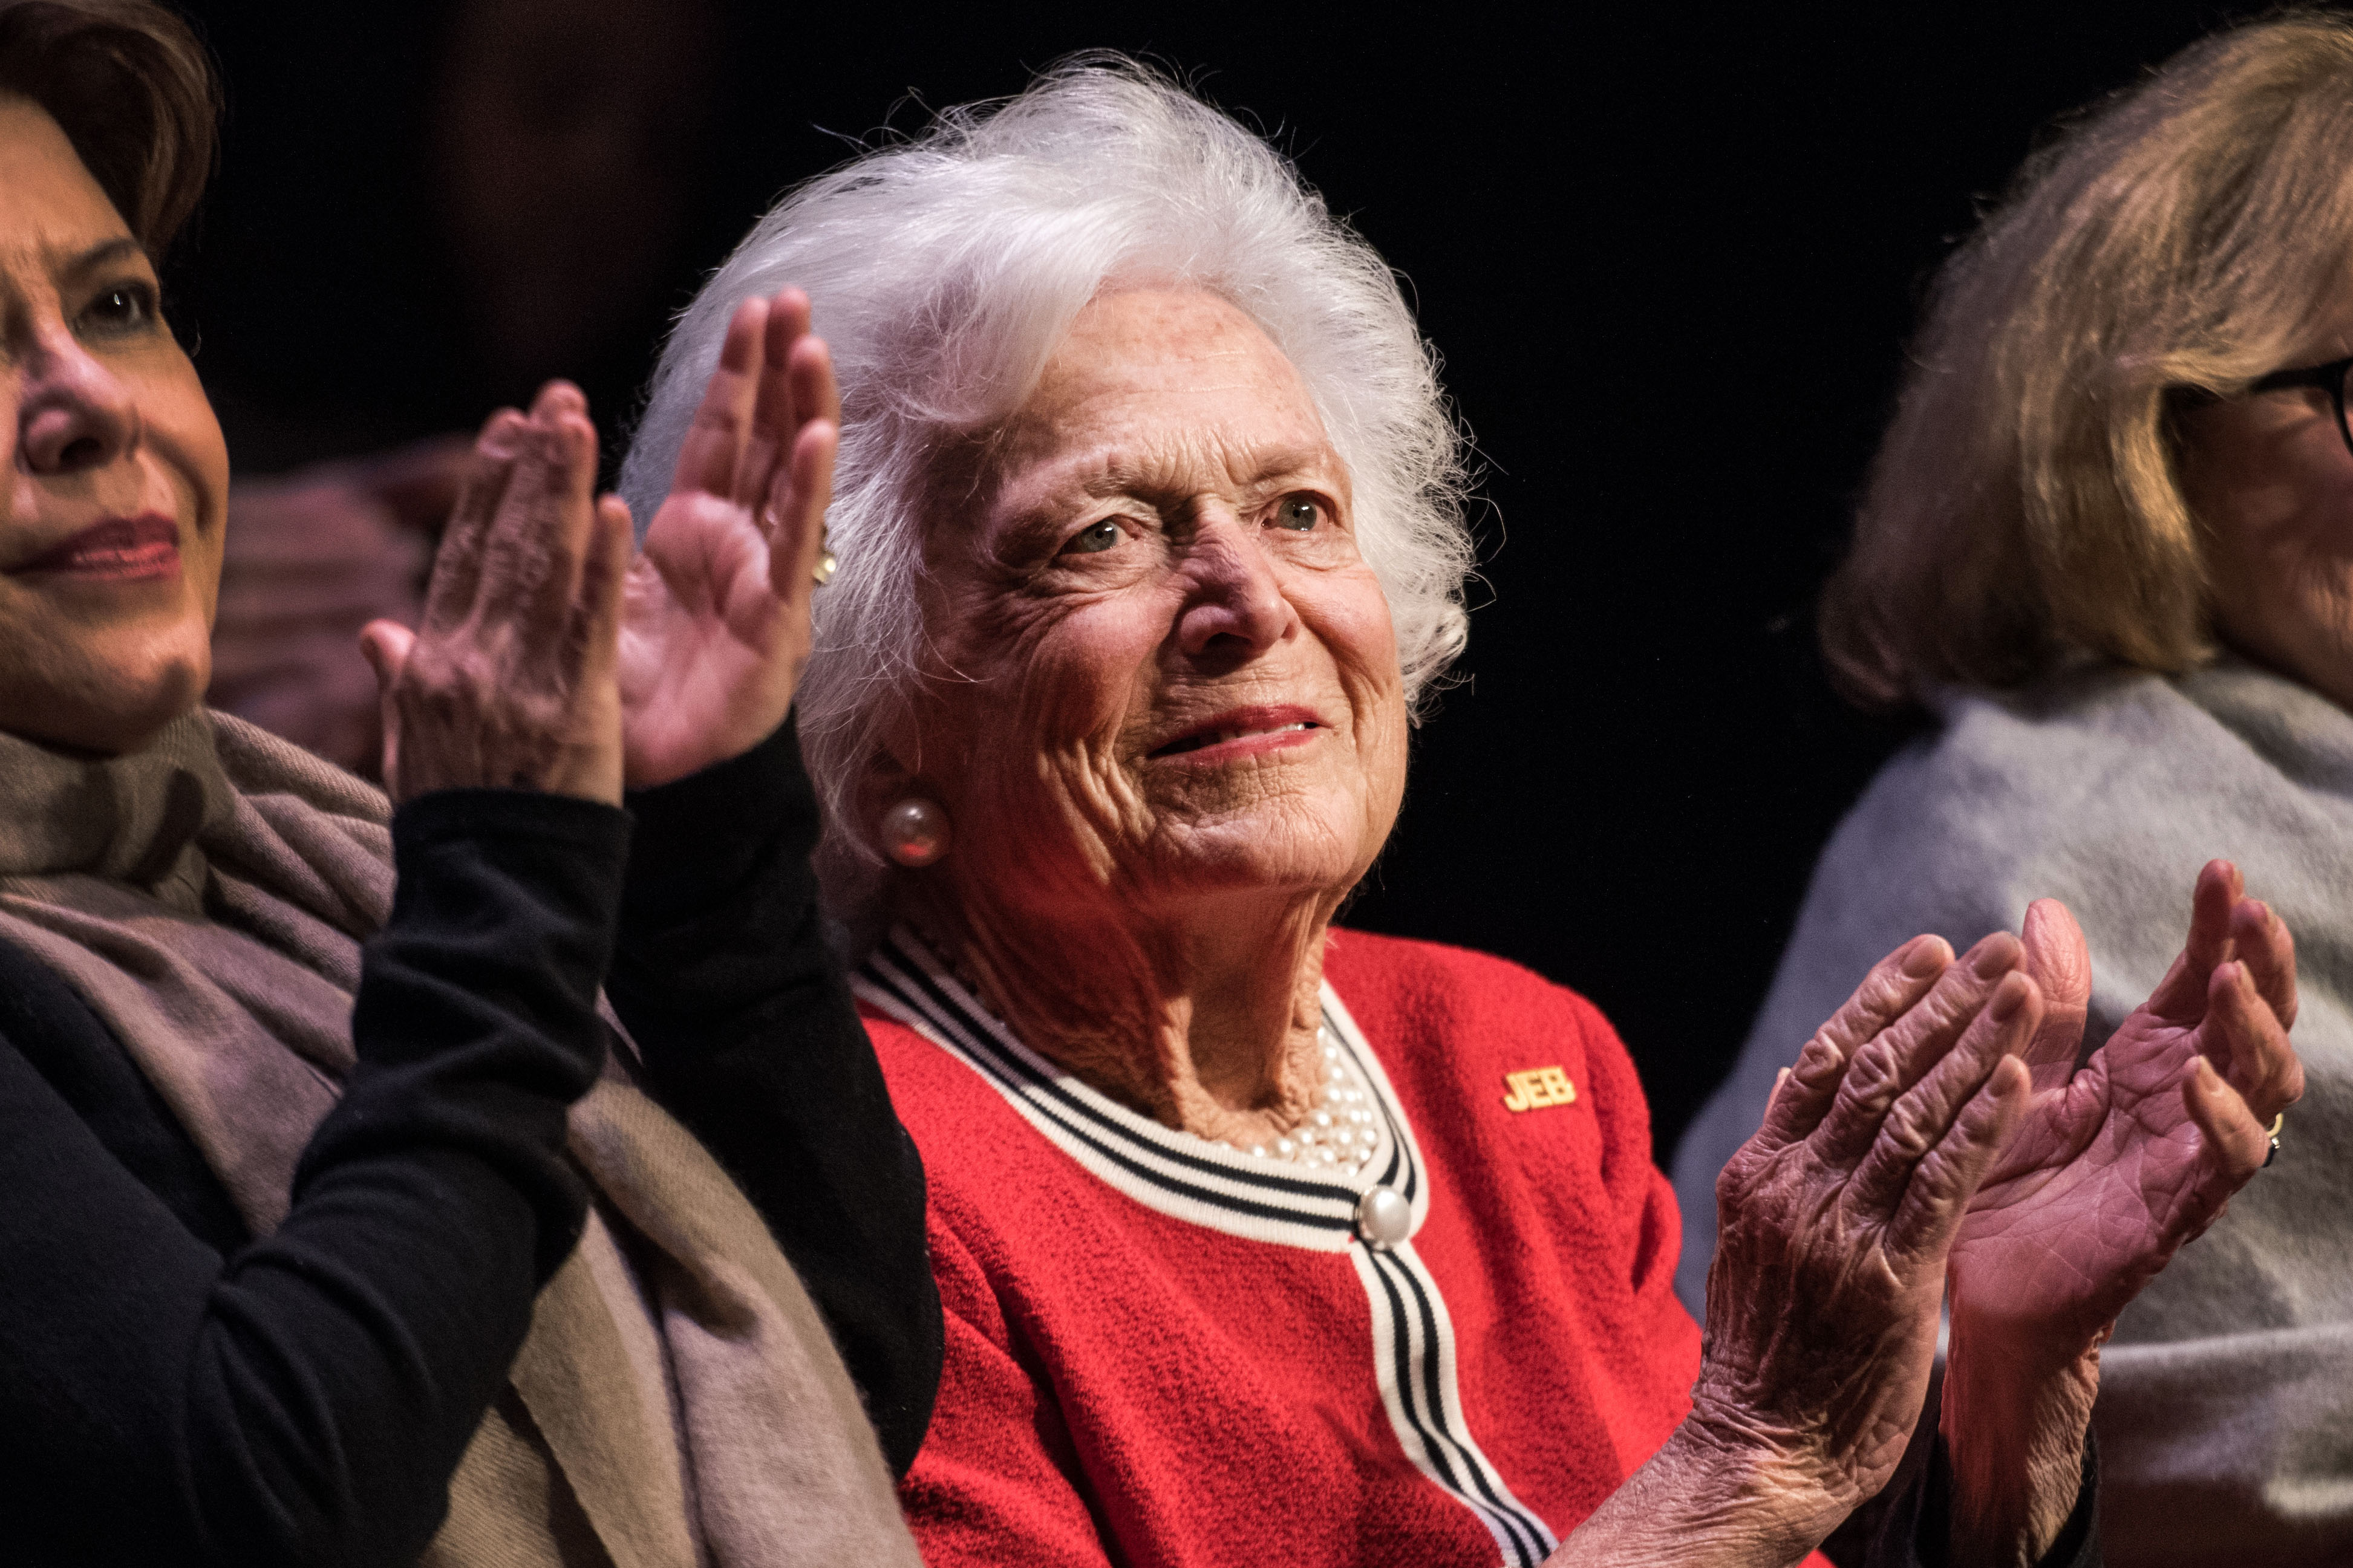 Former first lady Mrs. Barbara Bush applauds for Republican presidential candidate Jeb Bush during a campaign event in Greenville, S.C. on Feb. 19, 2016.